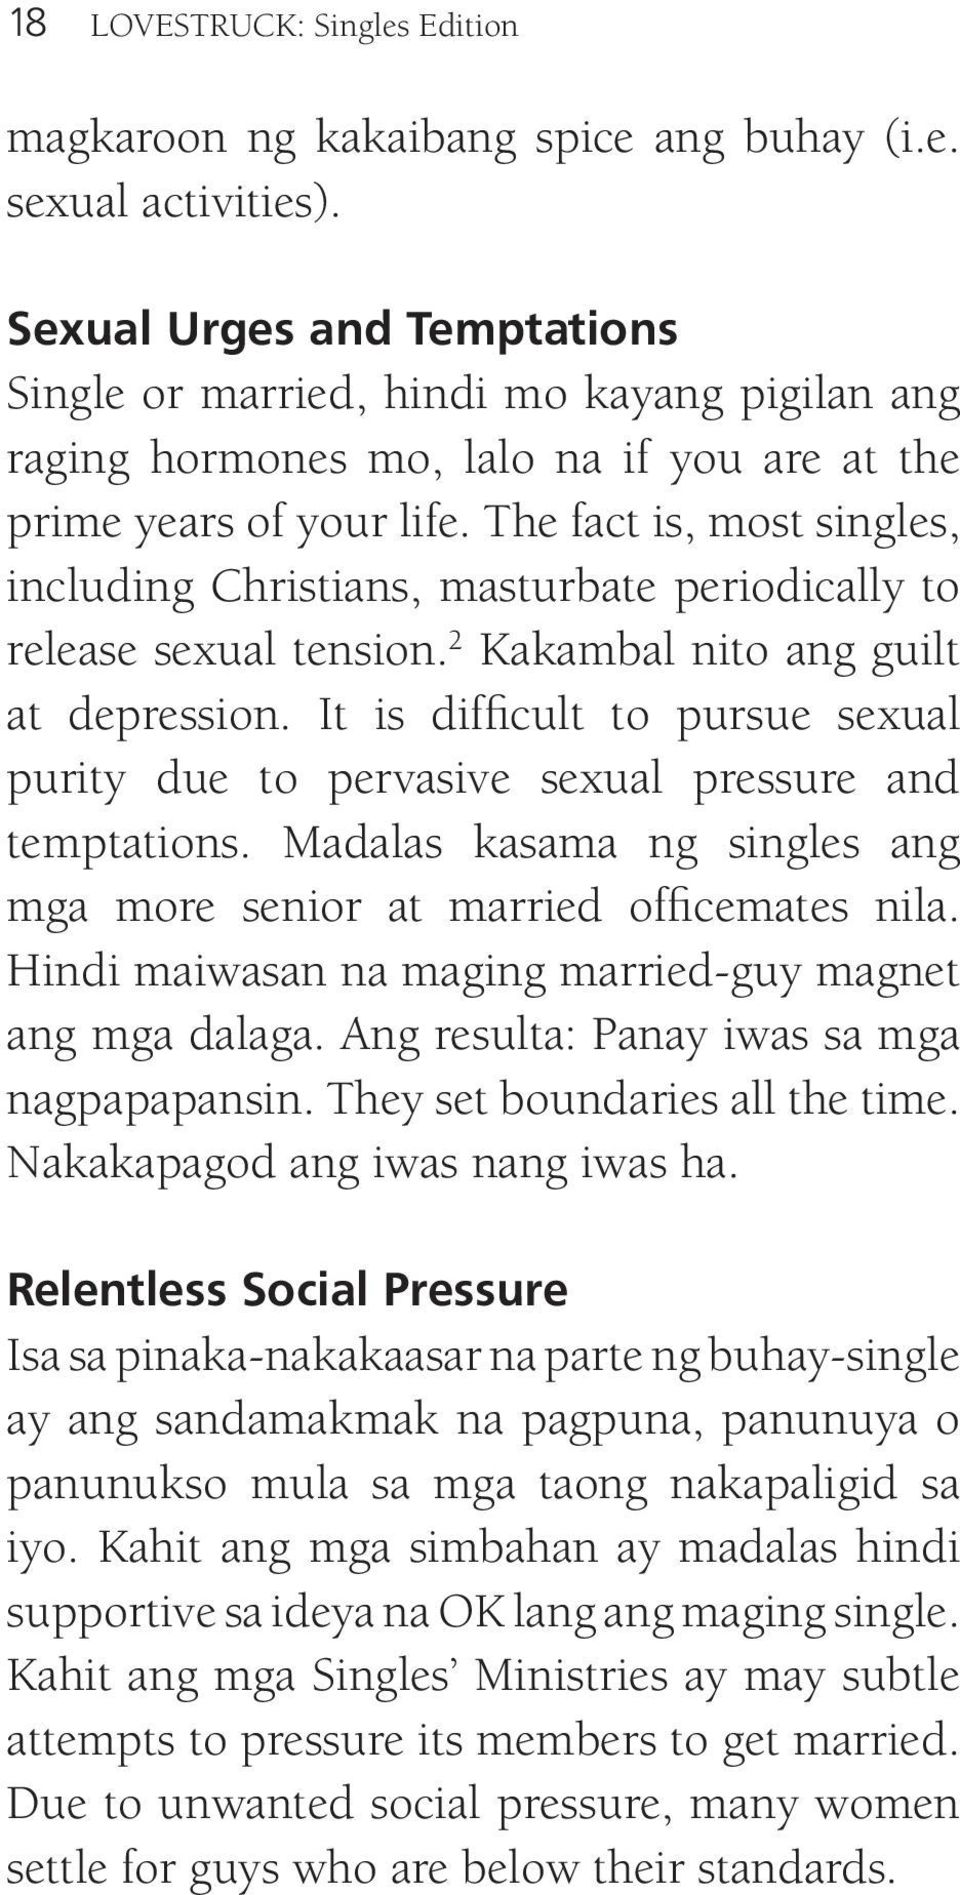 The fact is, most singles, including Christians, masturbate periodically to release sexual tension. 2 kakambal nito ang guilt at depression.